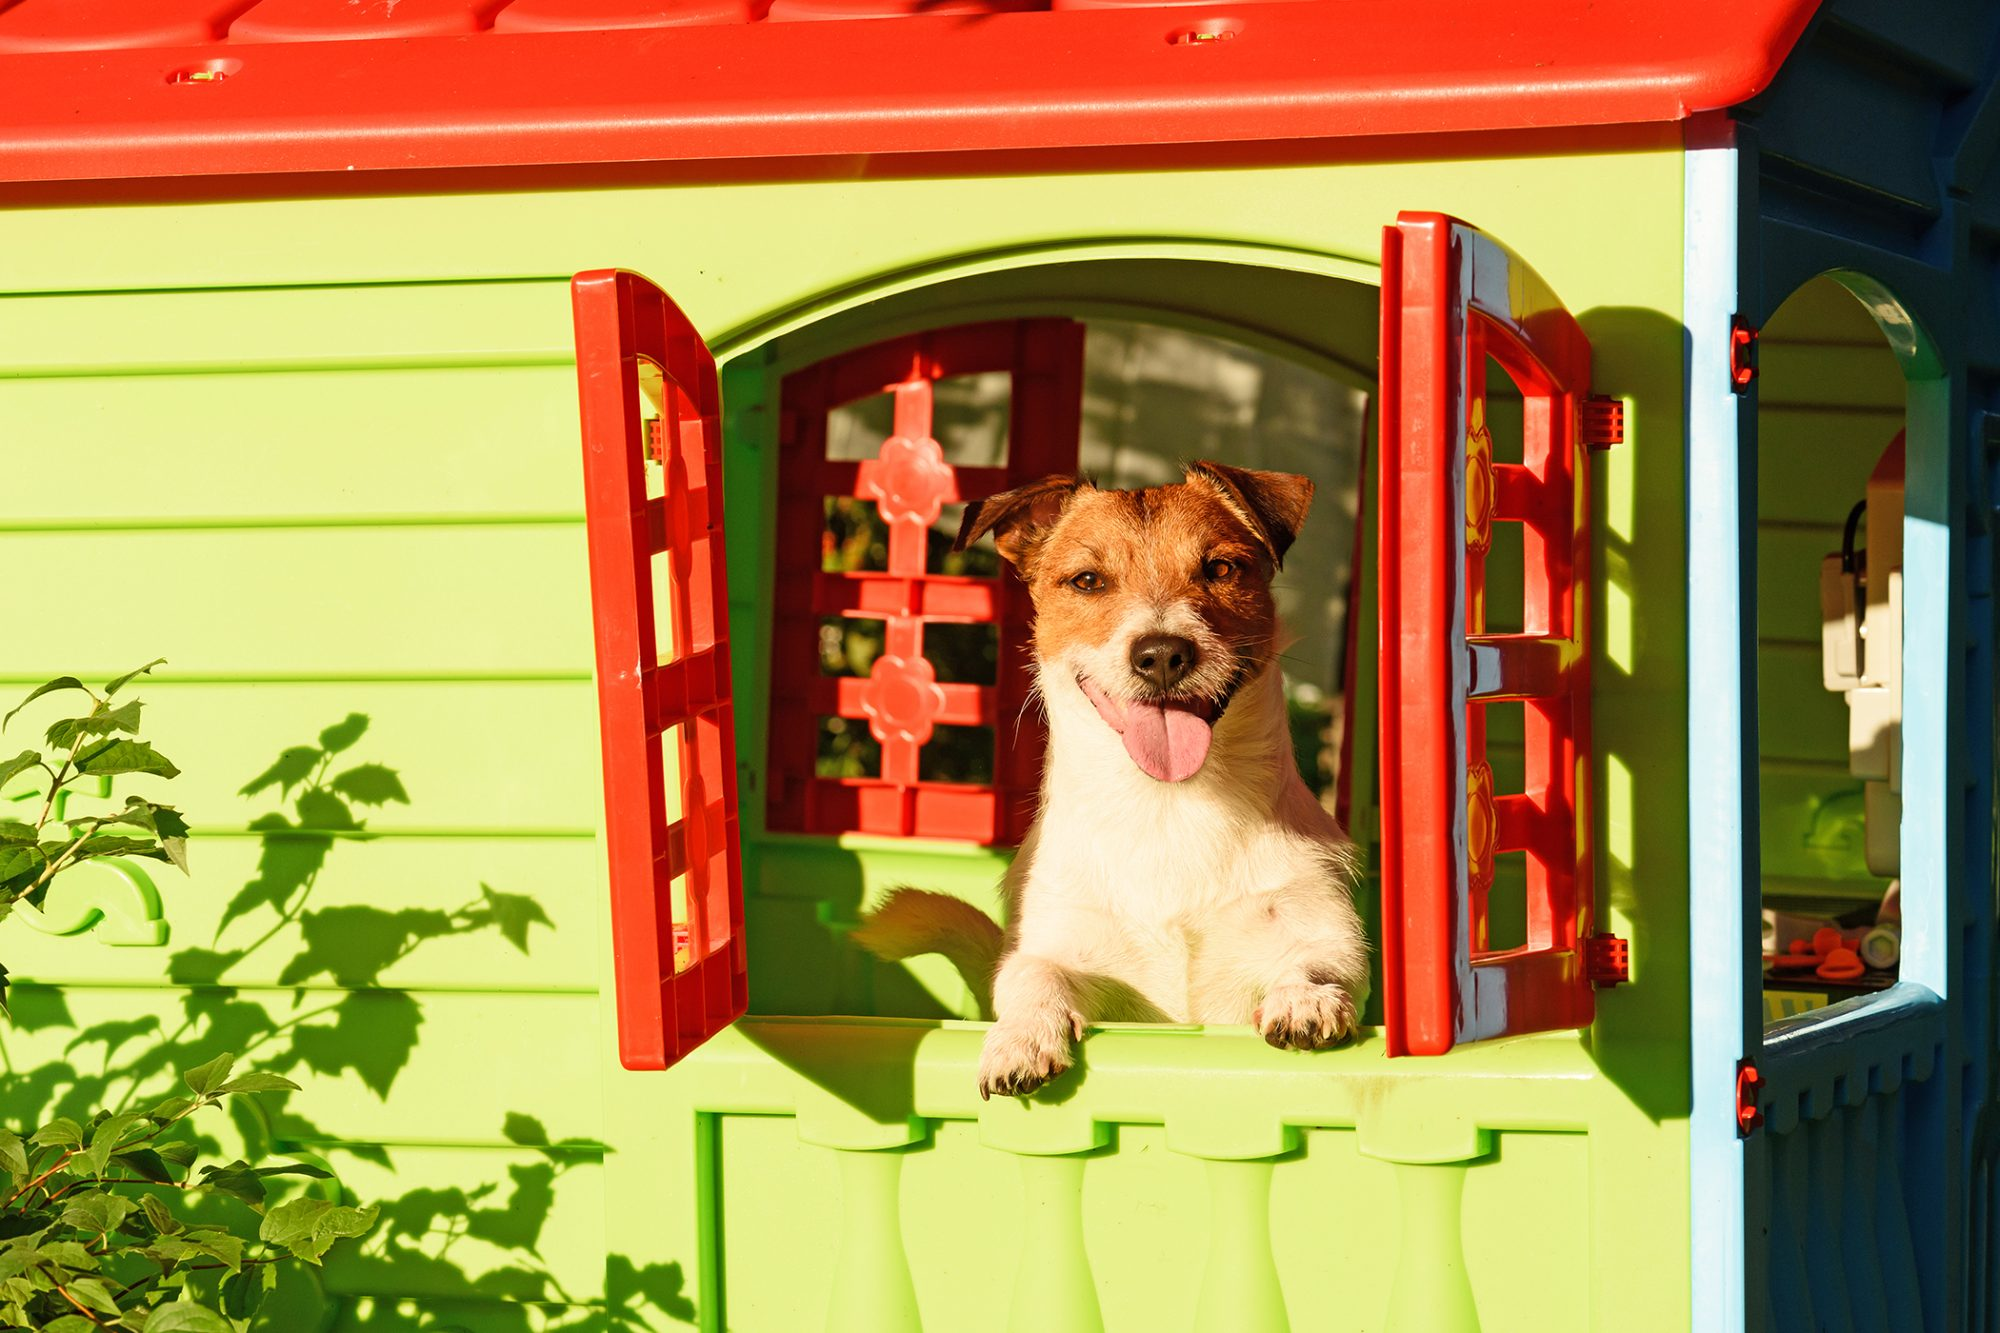 Happy terrier peeps out of an outdoor playhouse